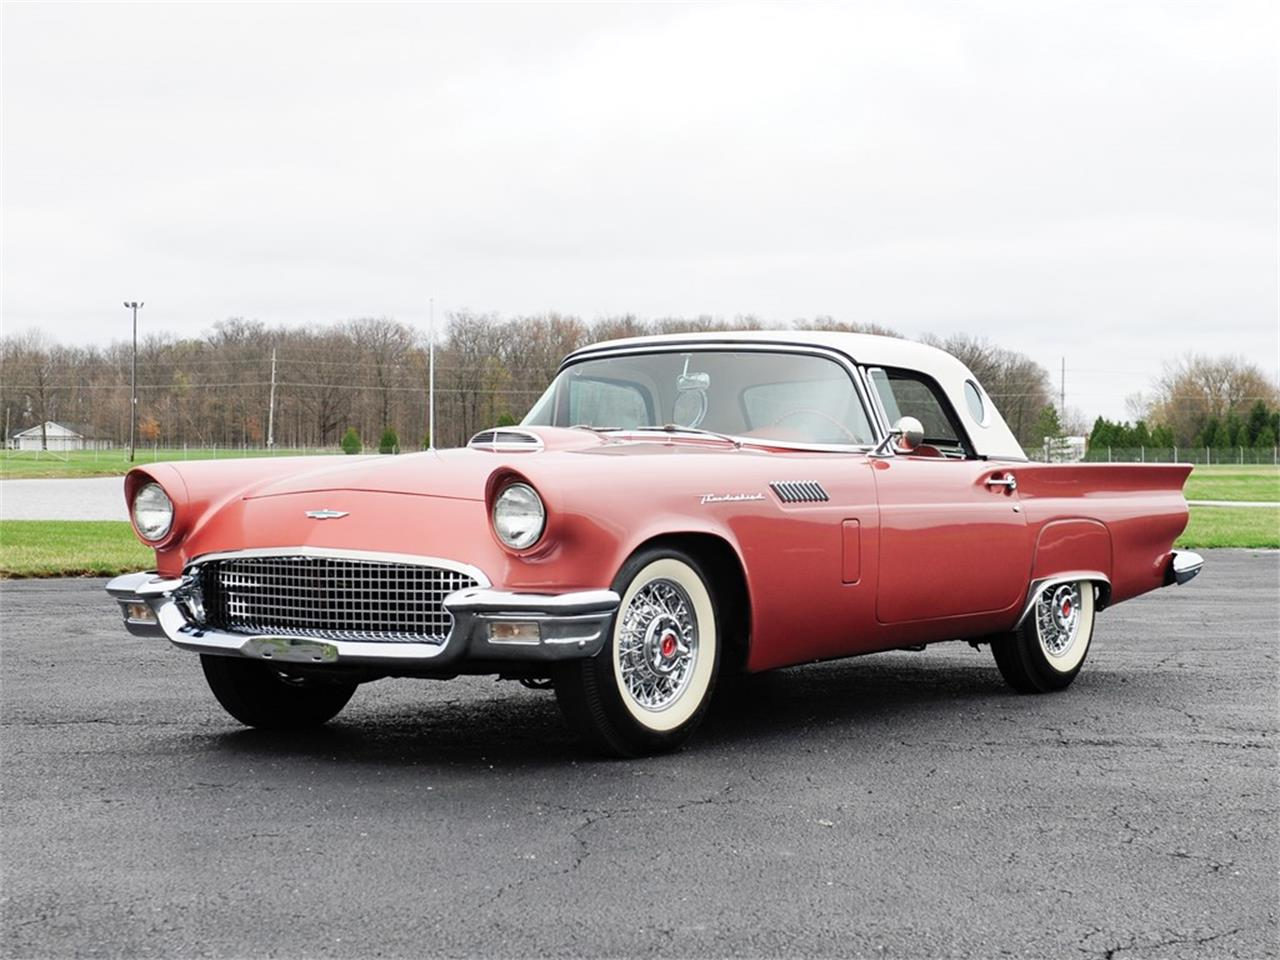 Large Picture of 1957 Ford Thunderbird located in Auburn Indiana - Q12Q